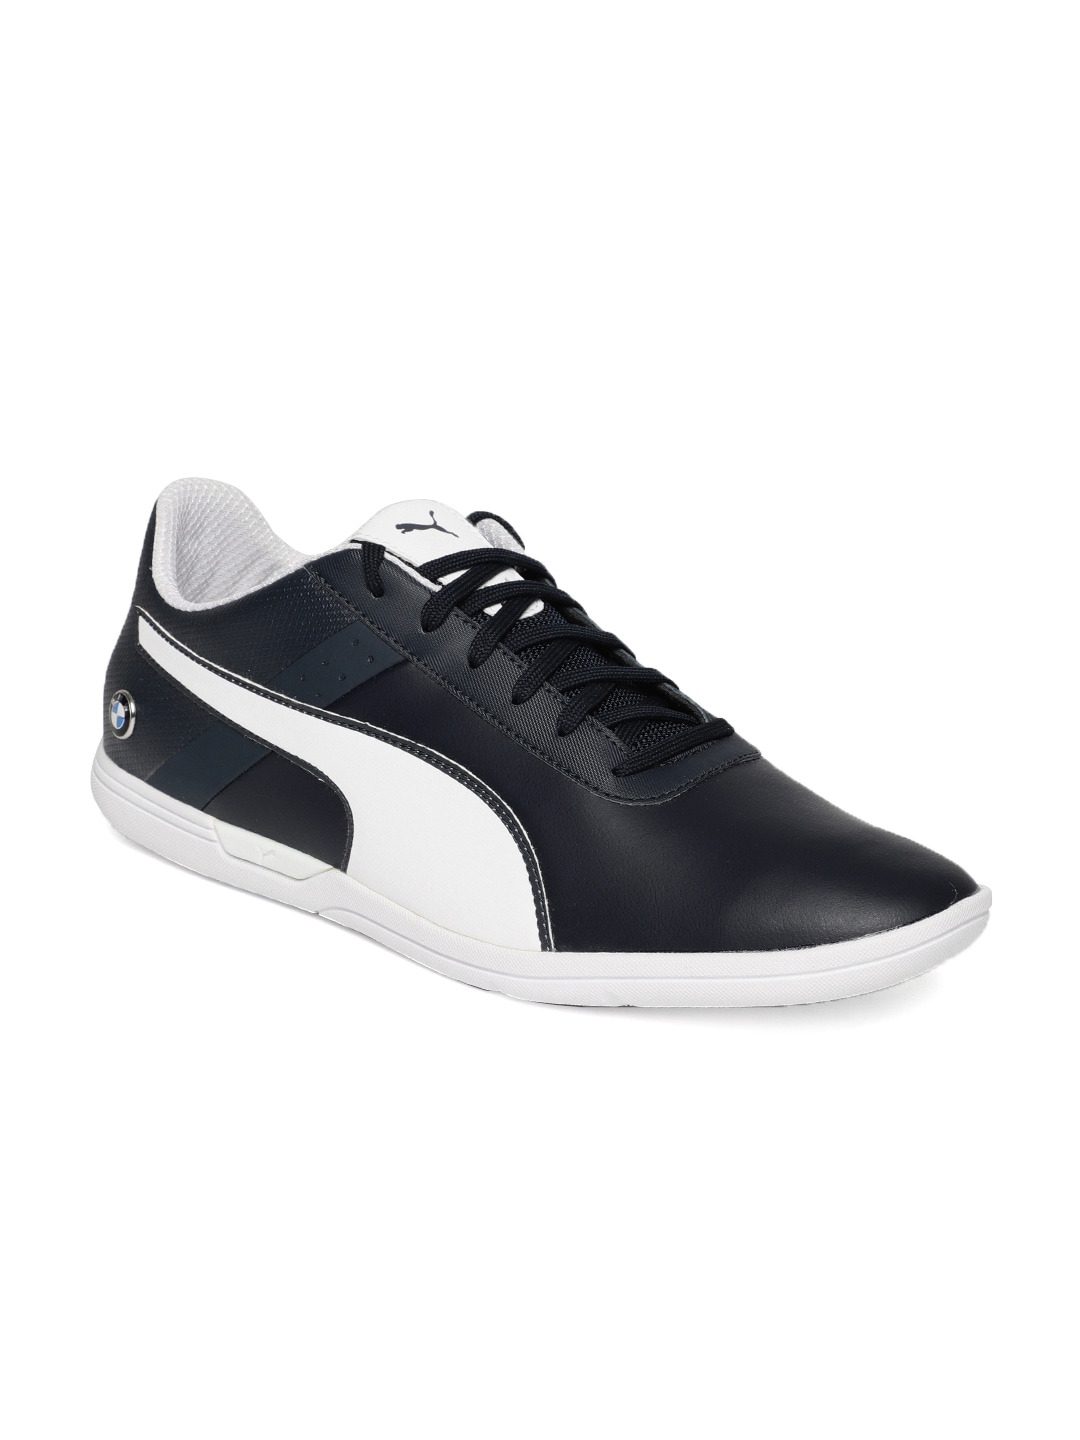 Puma Leather Shoes - Buy Puma Leather Shoes Online in India 08c0e81d0